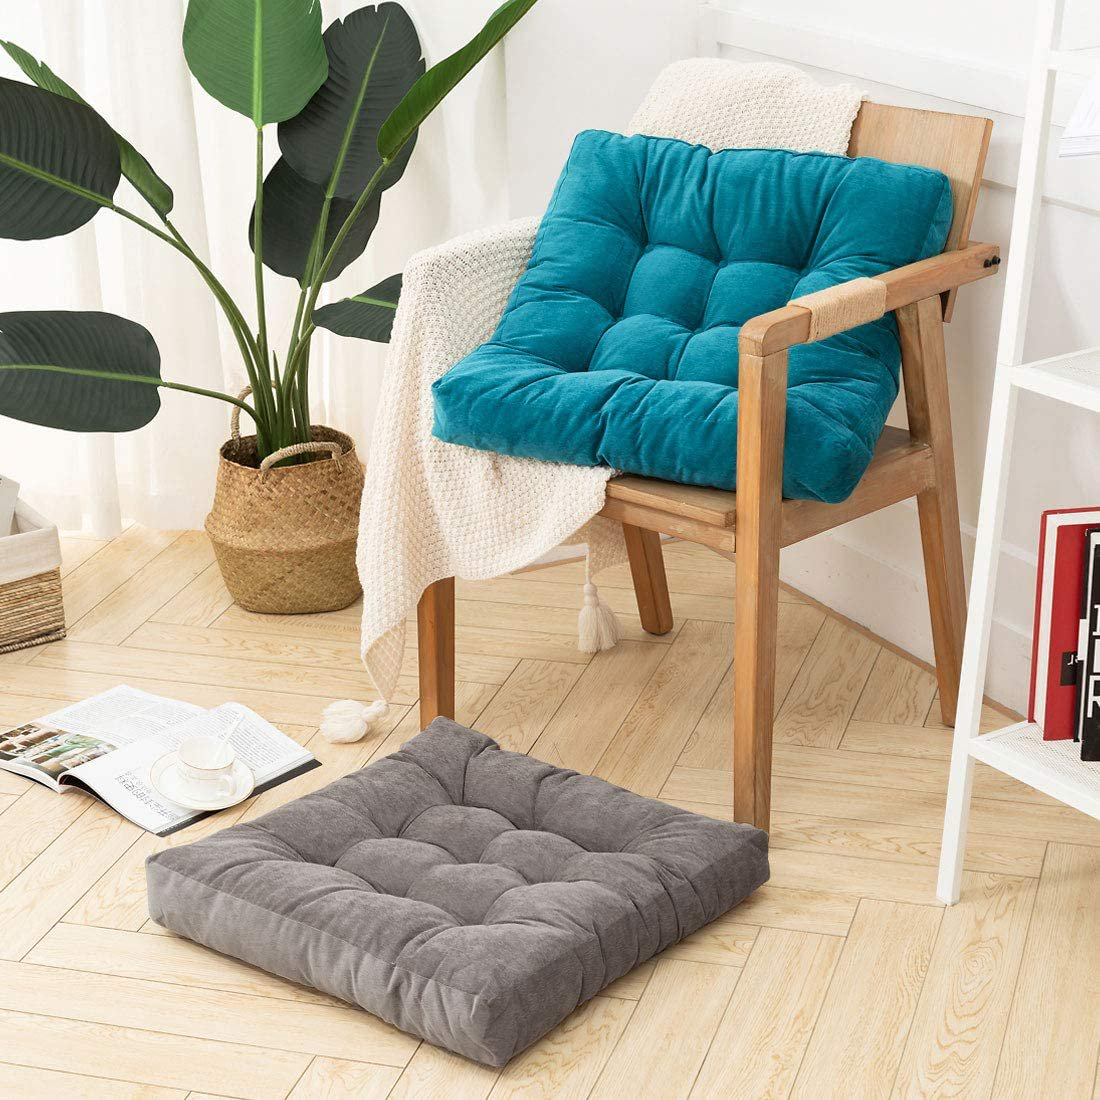 Floor Pillow Square Meditation Pillow For Seating On Floor Solid Thick Tufted Seat Cushion Meditation Cushion For Yoga Living Room Sofa Balcony Outdoor Coffee 22x22 Inch Walmart Canada